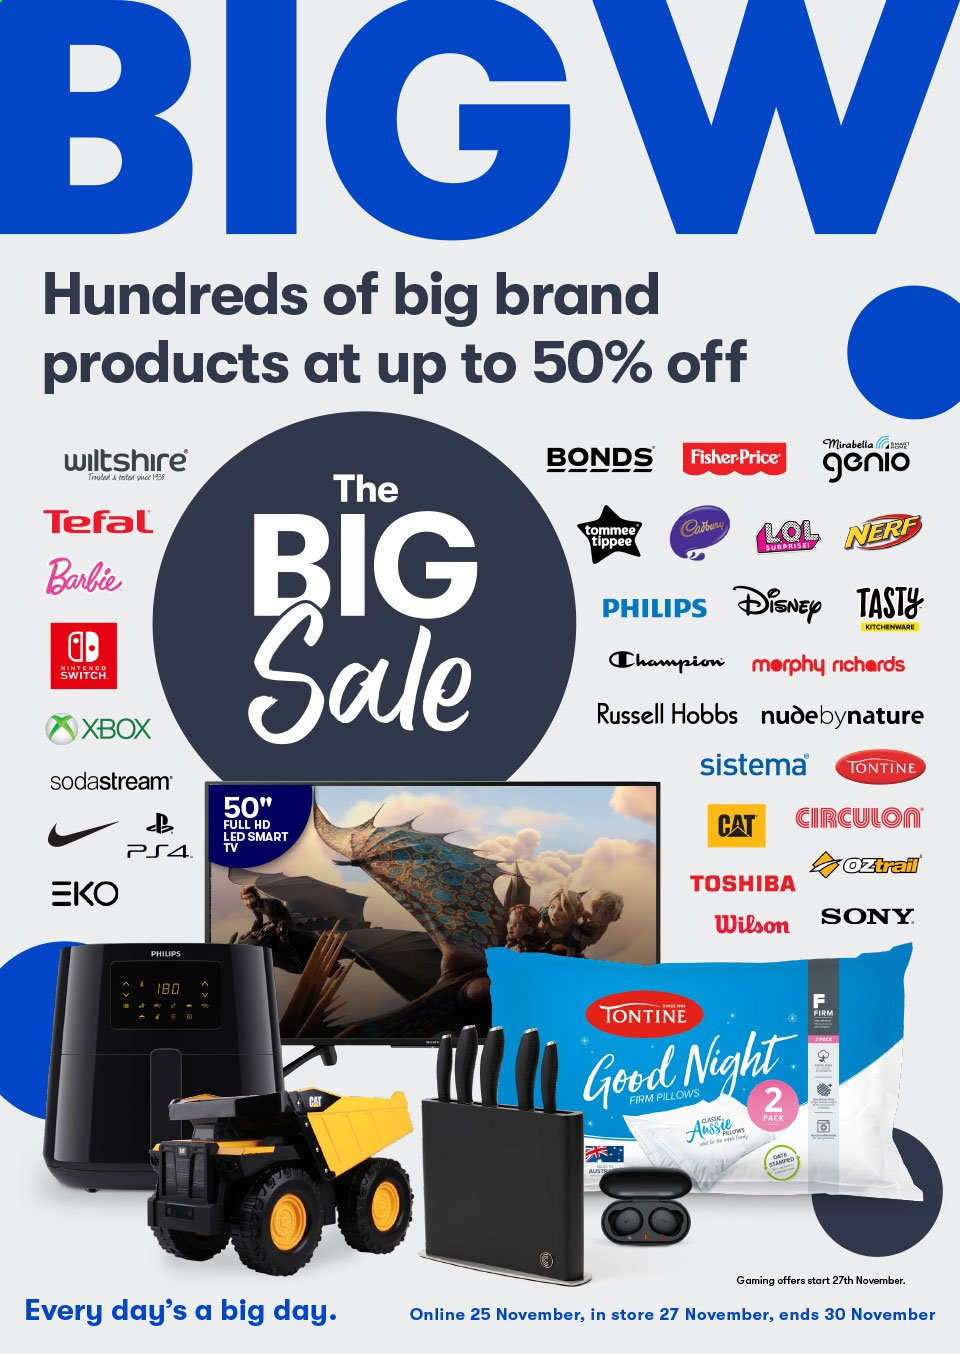 BIG W Catalogue - 25.11.2020 - 30.11.2020 - Sales products - Sony, Champion, Philips, Aussie, Barbie, Tefal, SodaStream, pillow, Nerf, PlayStation, Xbox, PlayStation 4, smart tv, Toshiba, TV, Russell Hobbs, Wilson, Bonds, Fisher-Price, switch. Page 1.